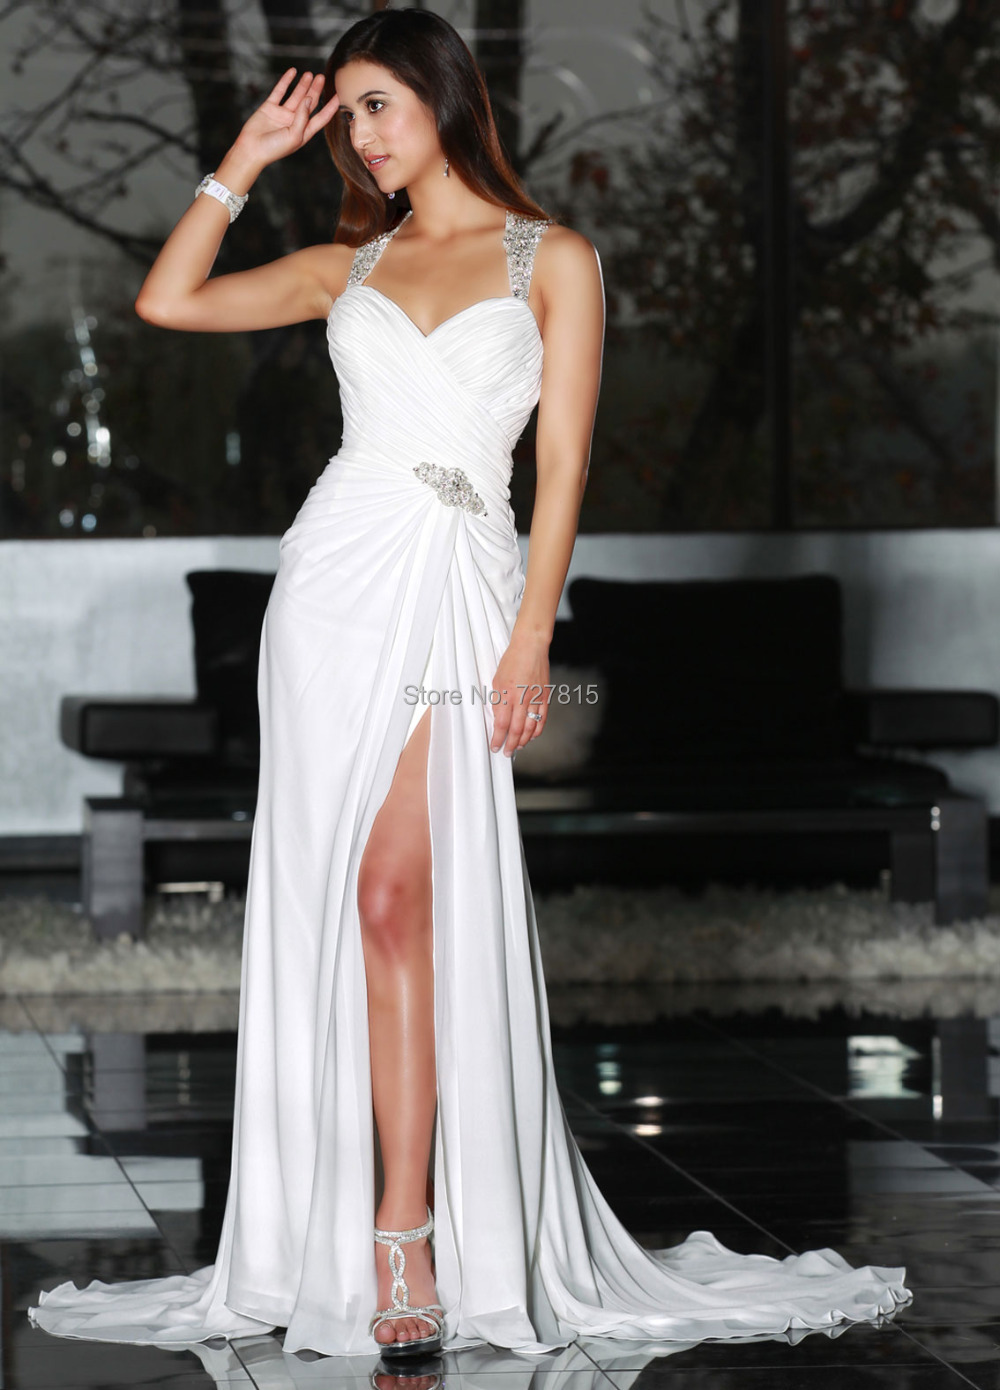 bohemian wedding dresses sexy high slit vestidos de novia